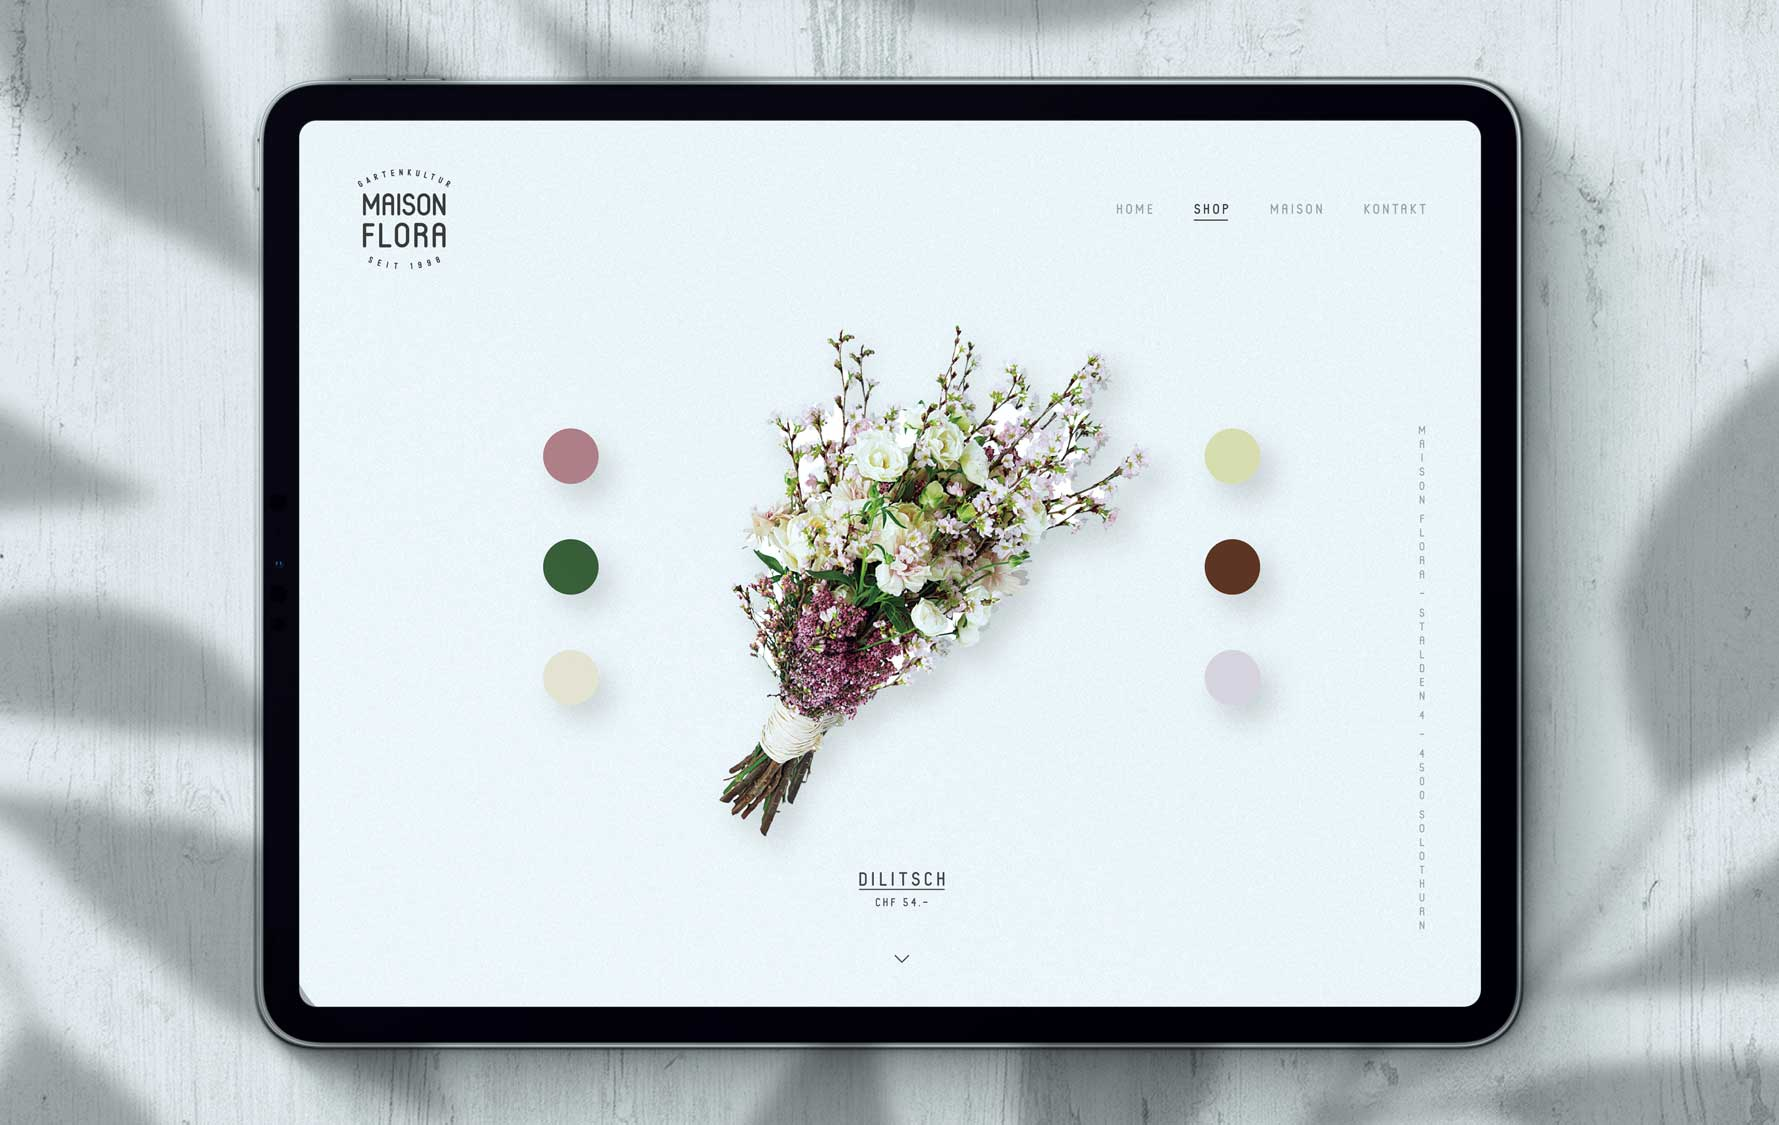 Onlineshop and webdesign for florist shop from Bern